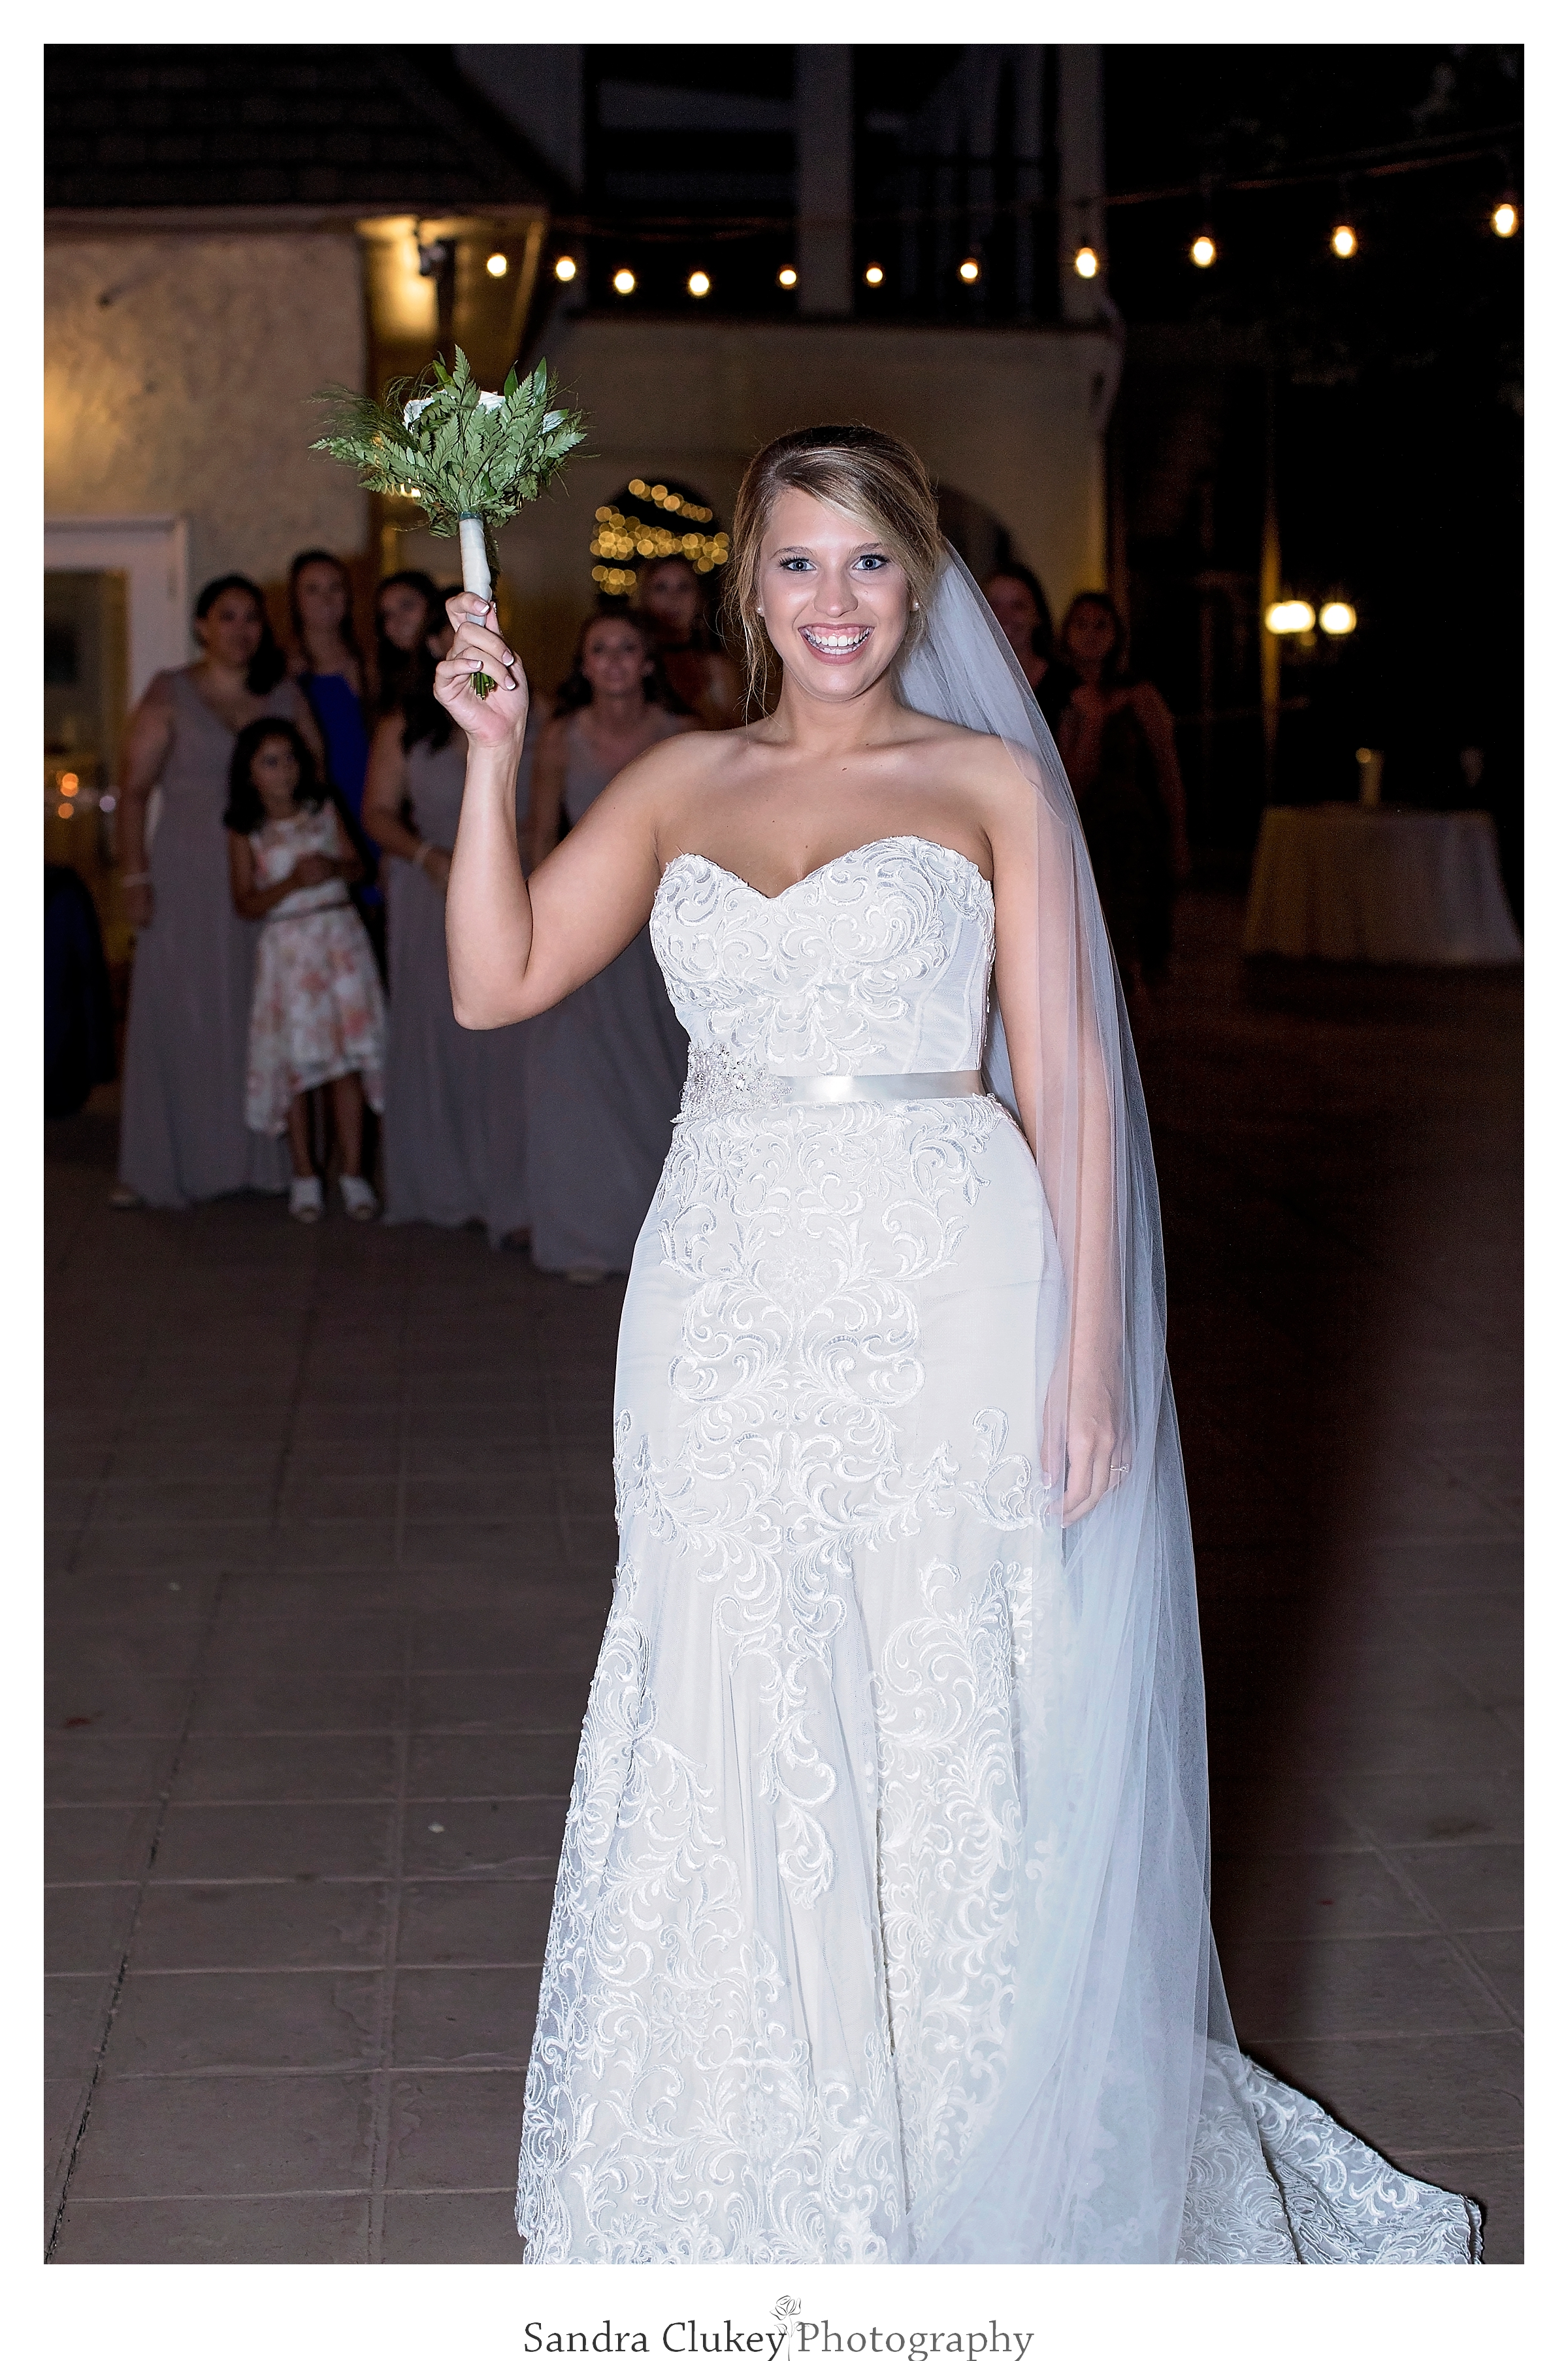 Bride preparing to toss bouquet at